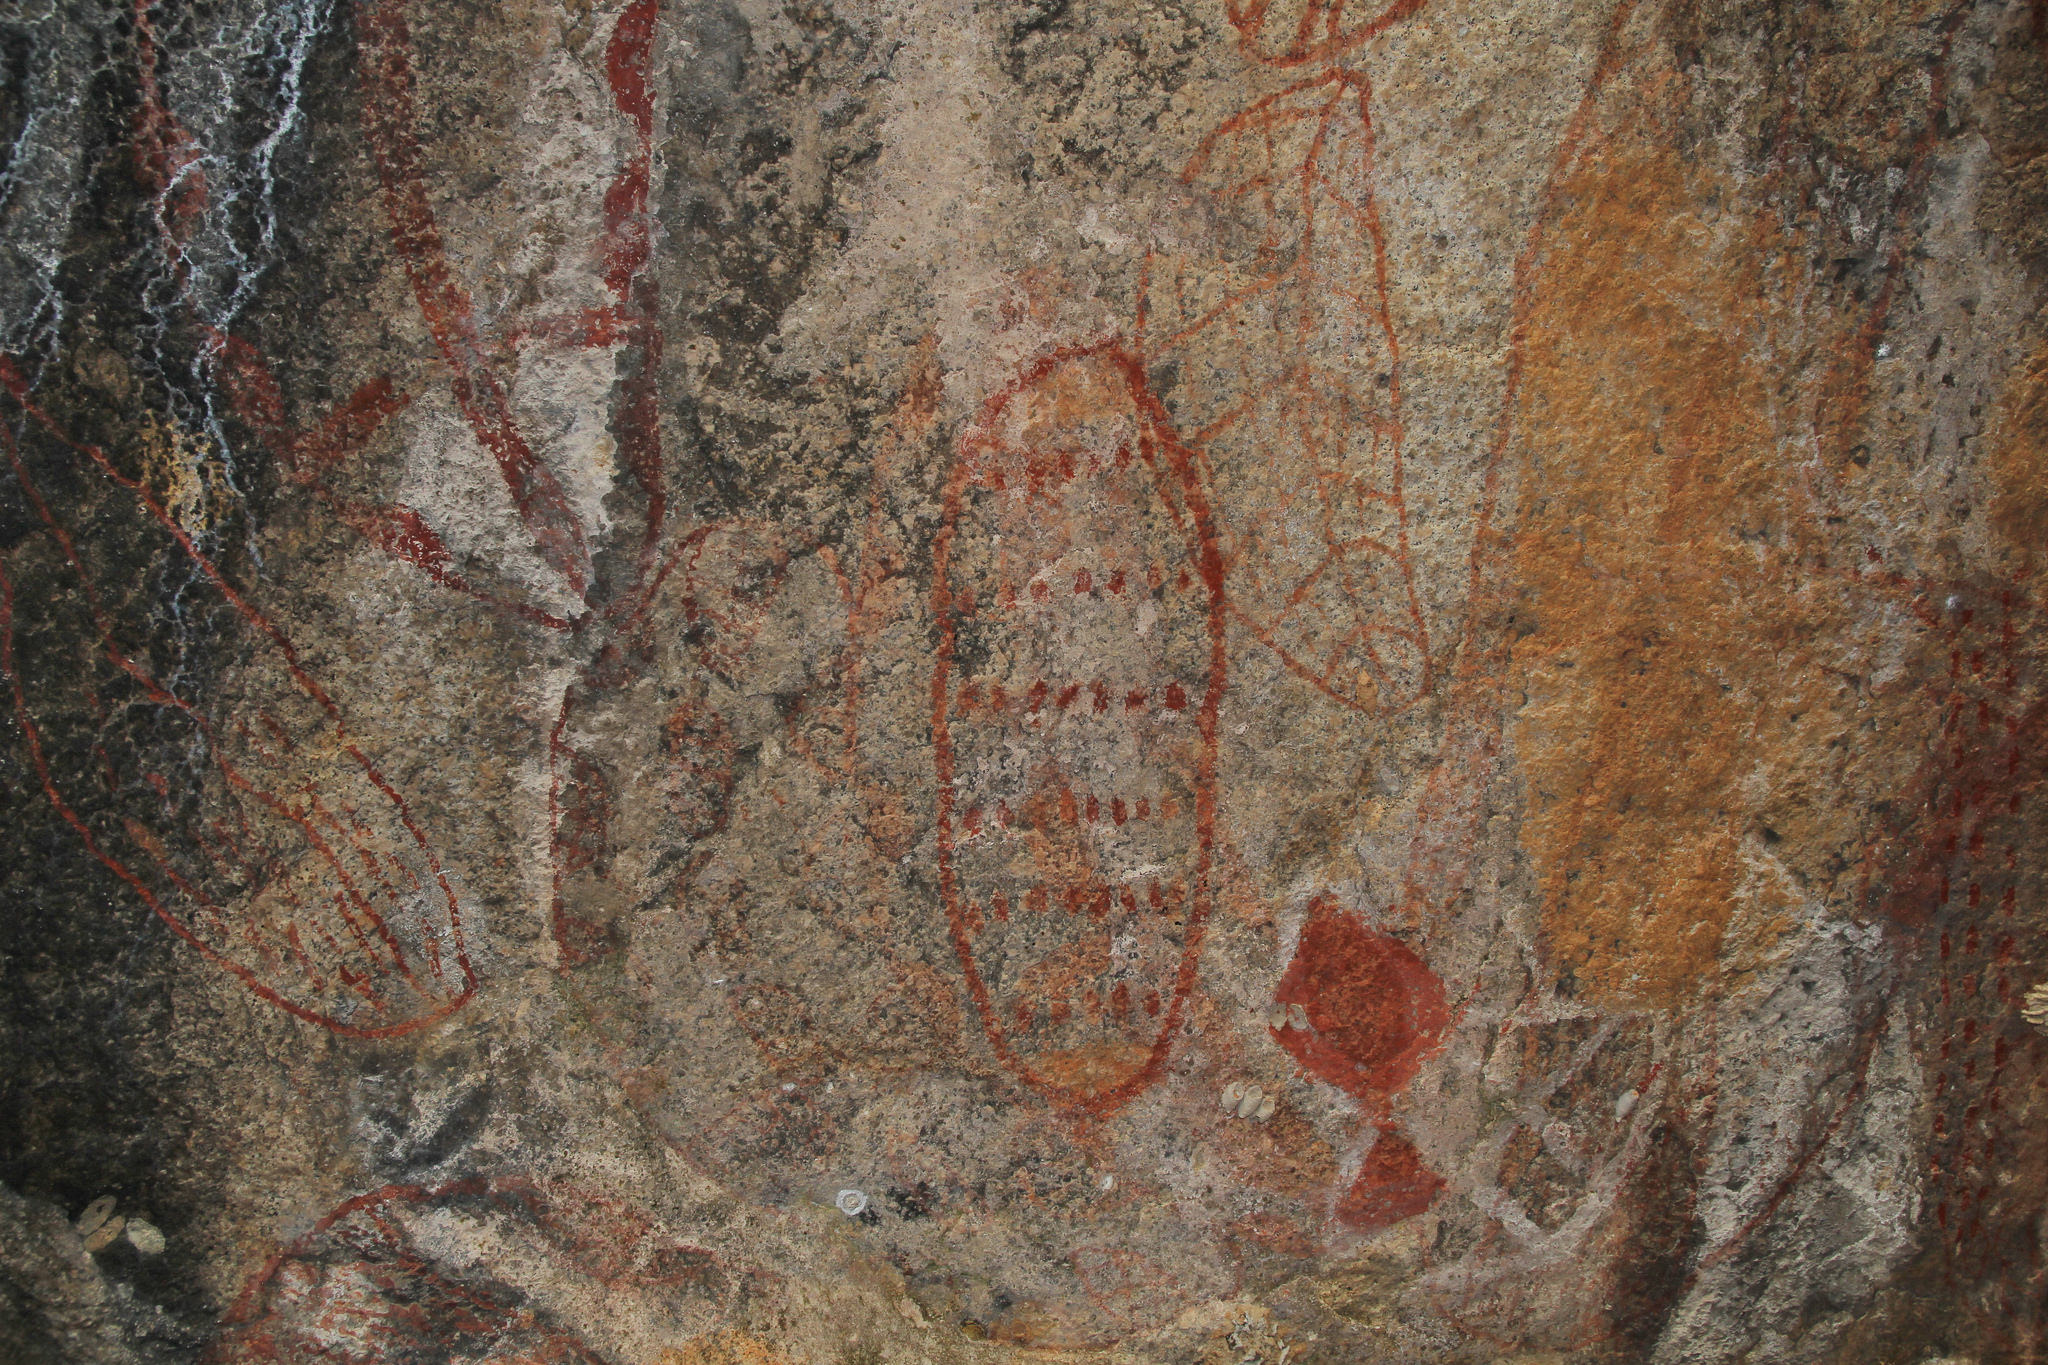 Cape Cleveland aboriginal rock art